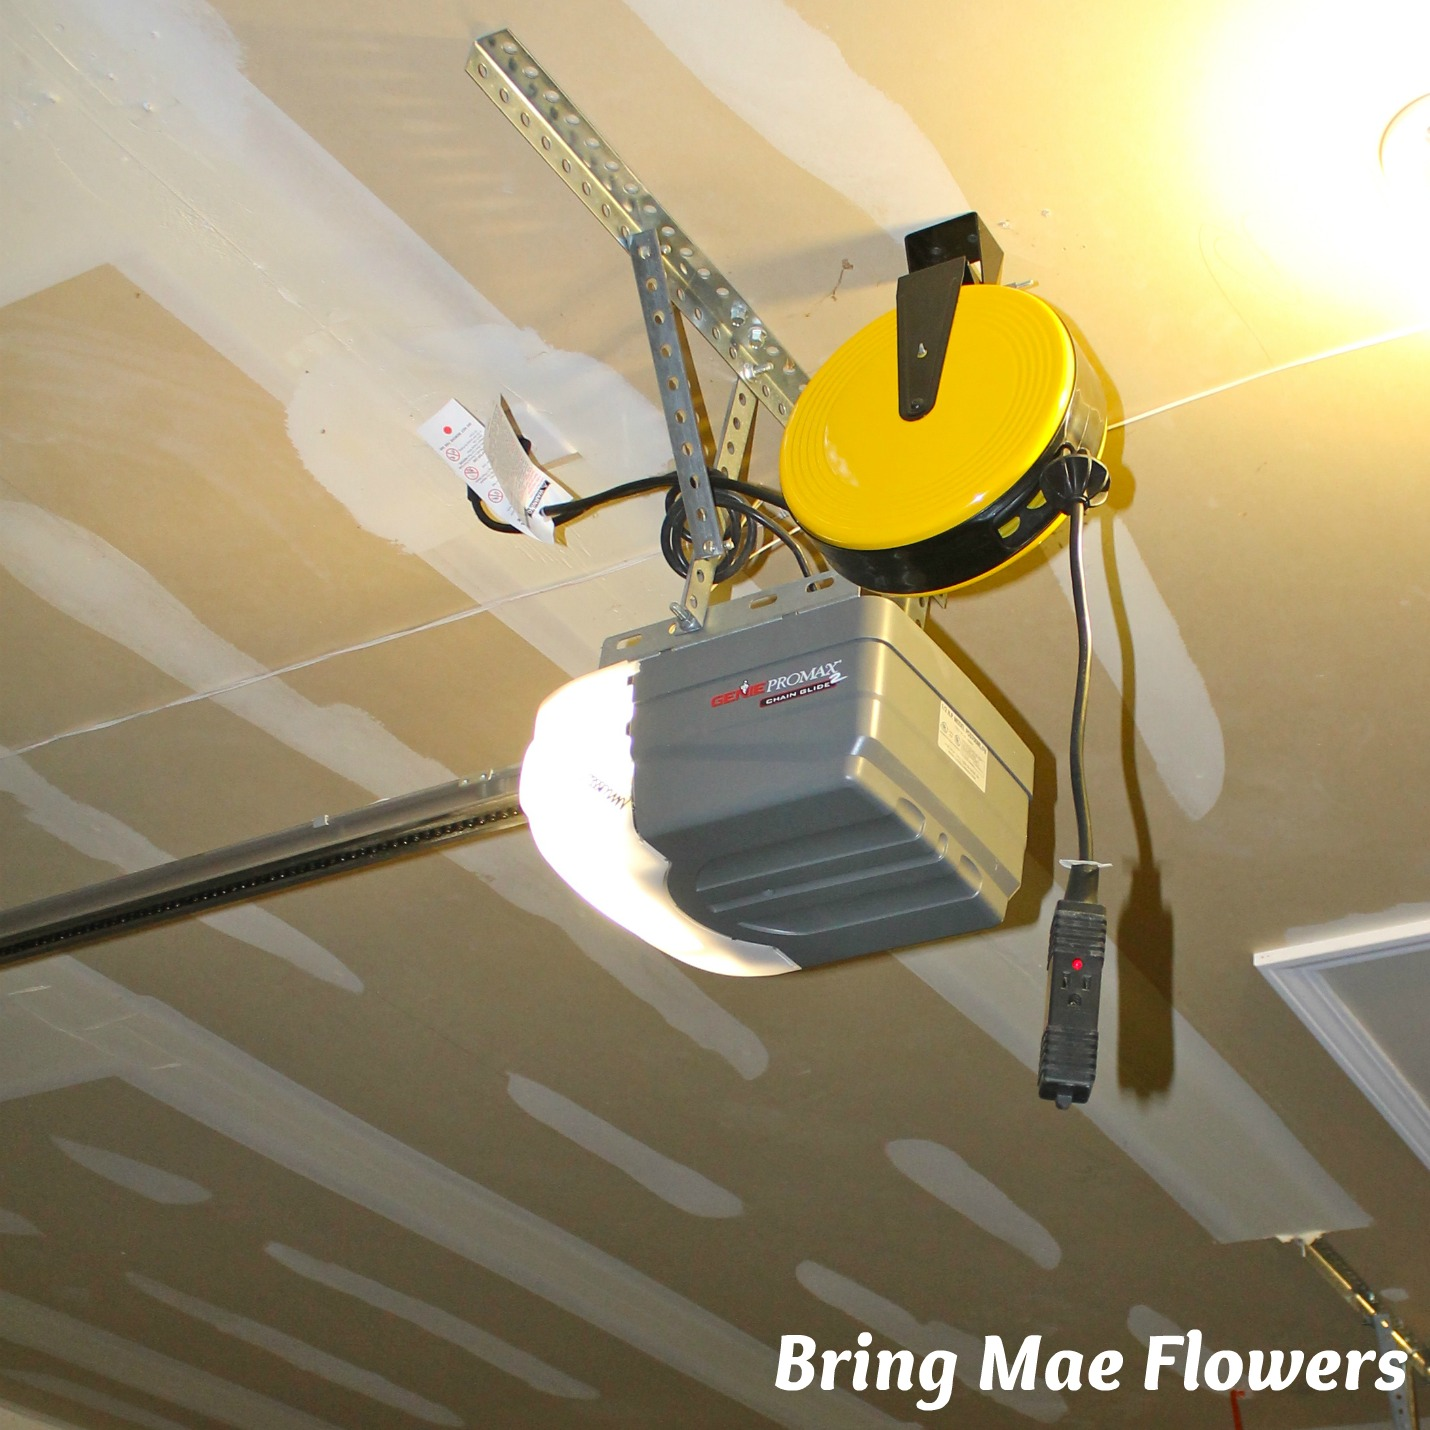 Garage door opener outlet - It S A Great Way To Make Use Of That Extra Power Outlet We All Have In Our Garages Where Our Overhead Garage Door Openers